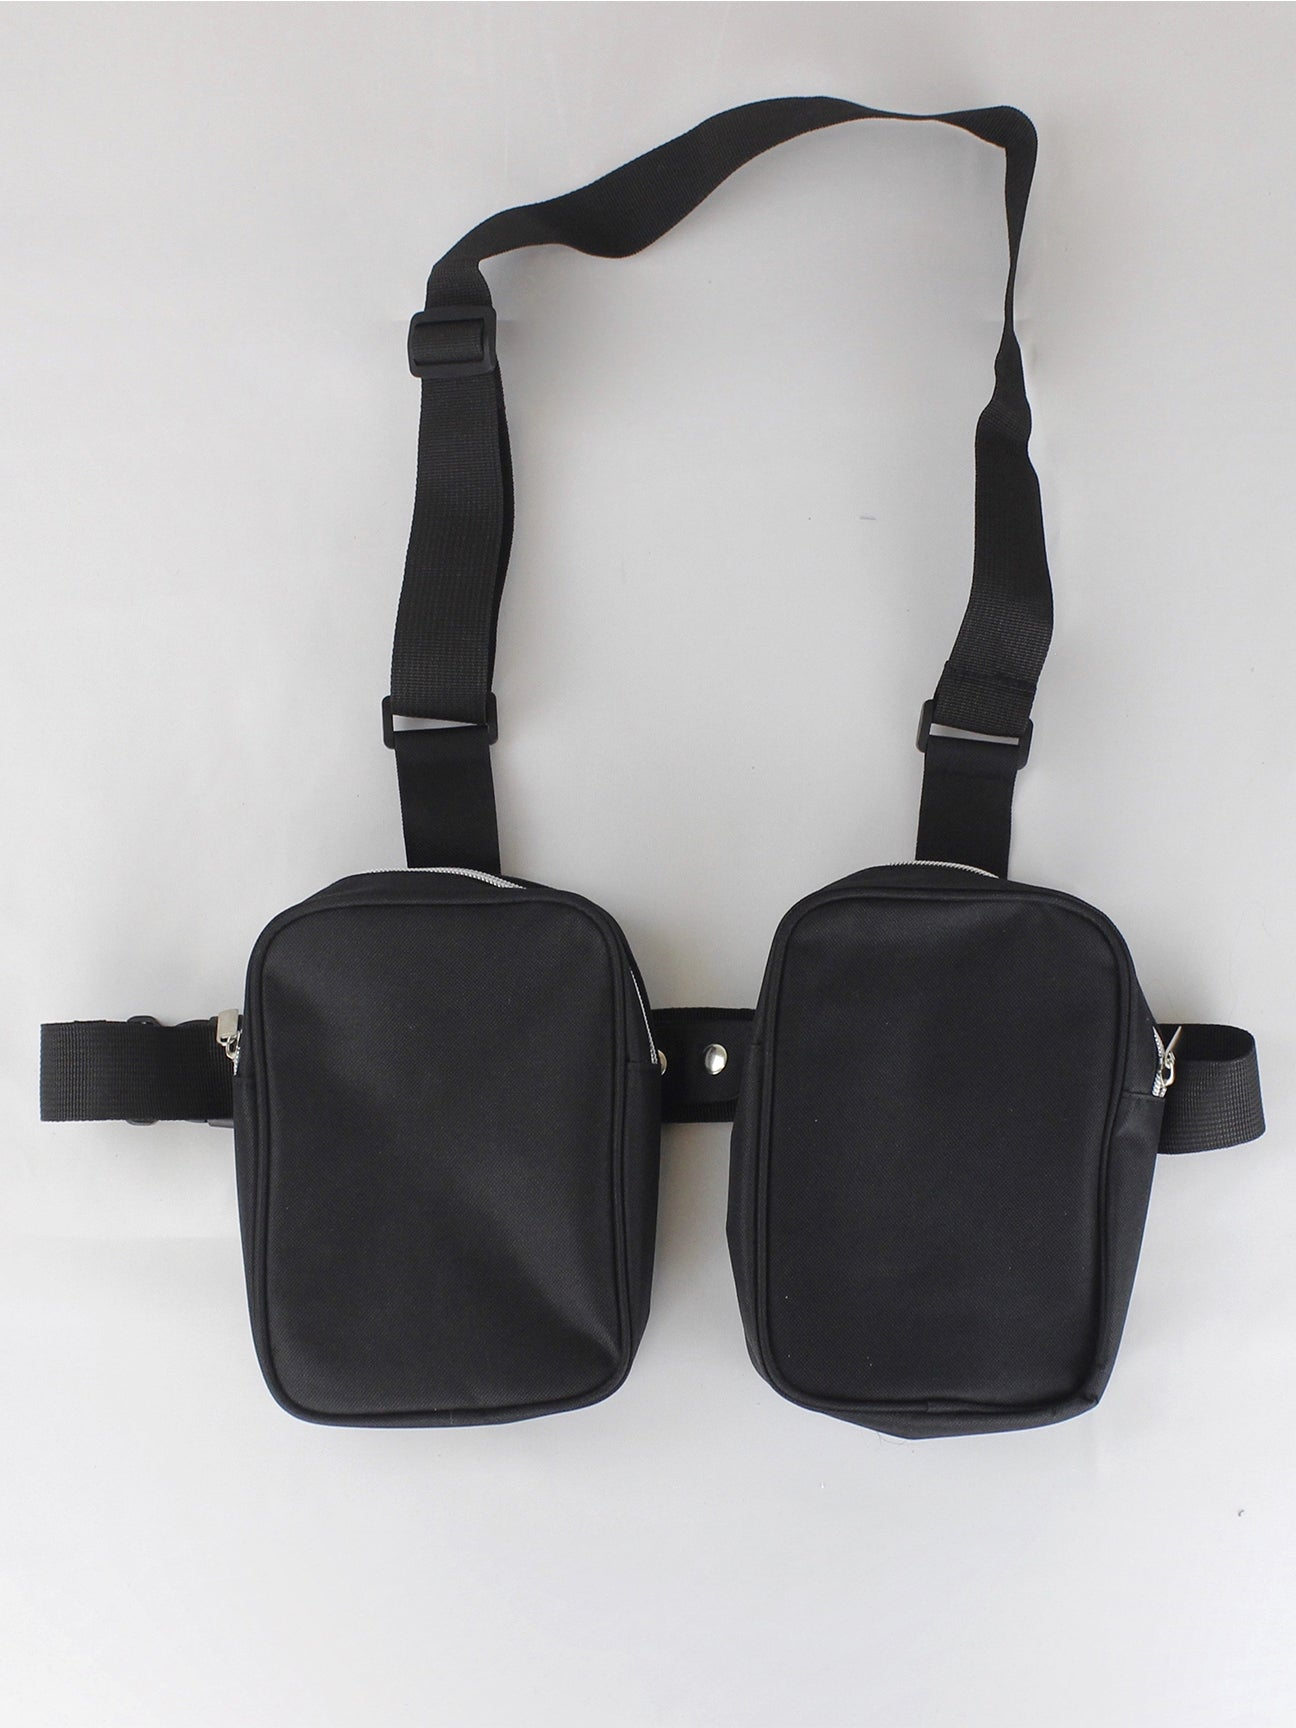 BODY HARNESS BAGS - svnx